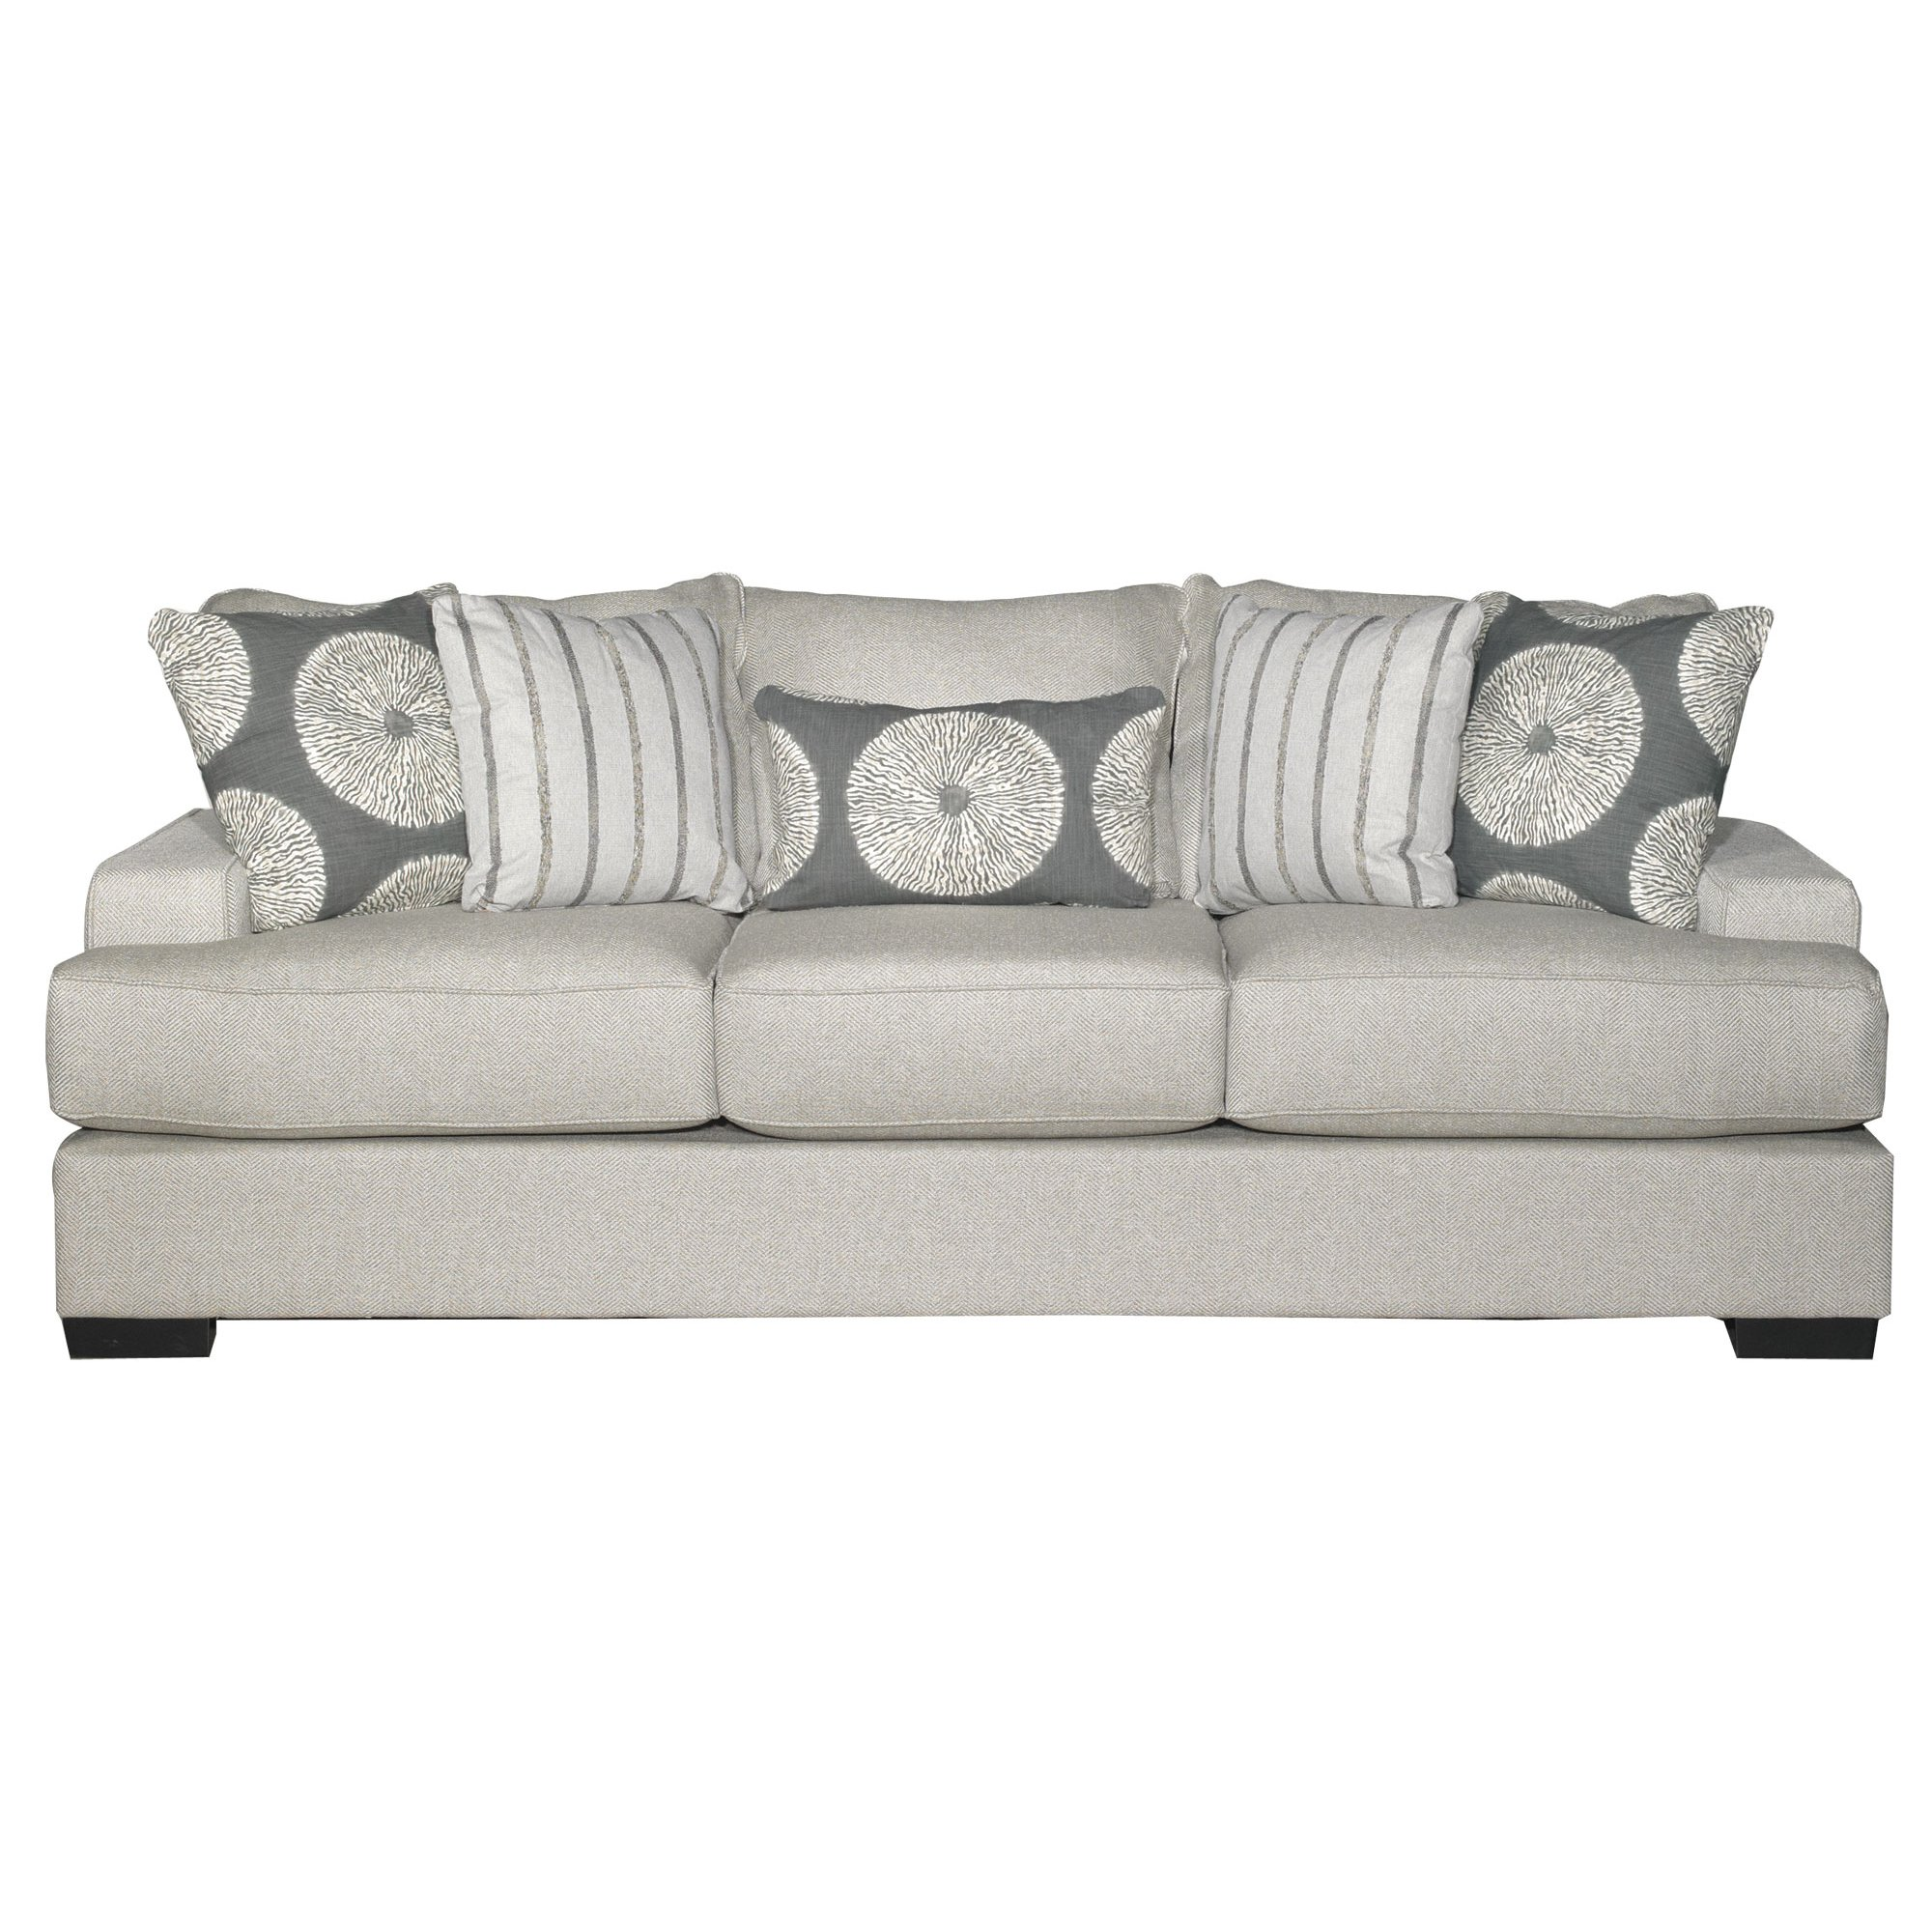 RC Willey sells fabric sofas and couches for your den